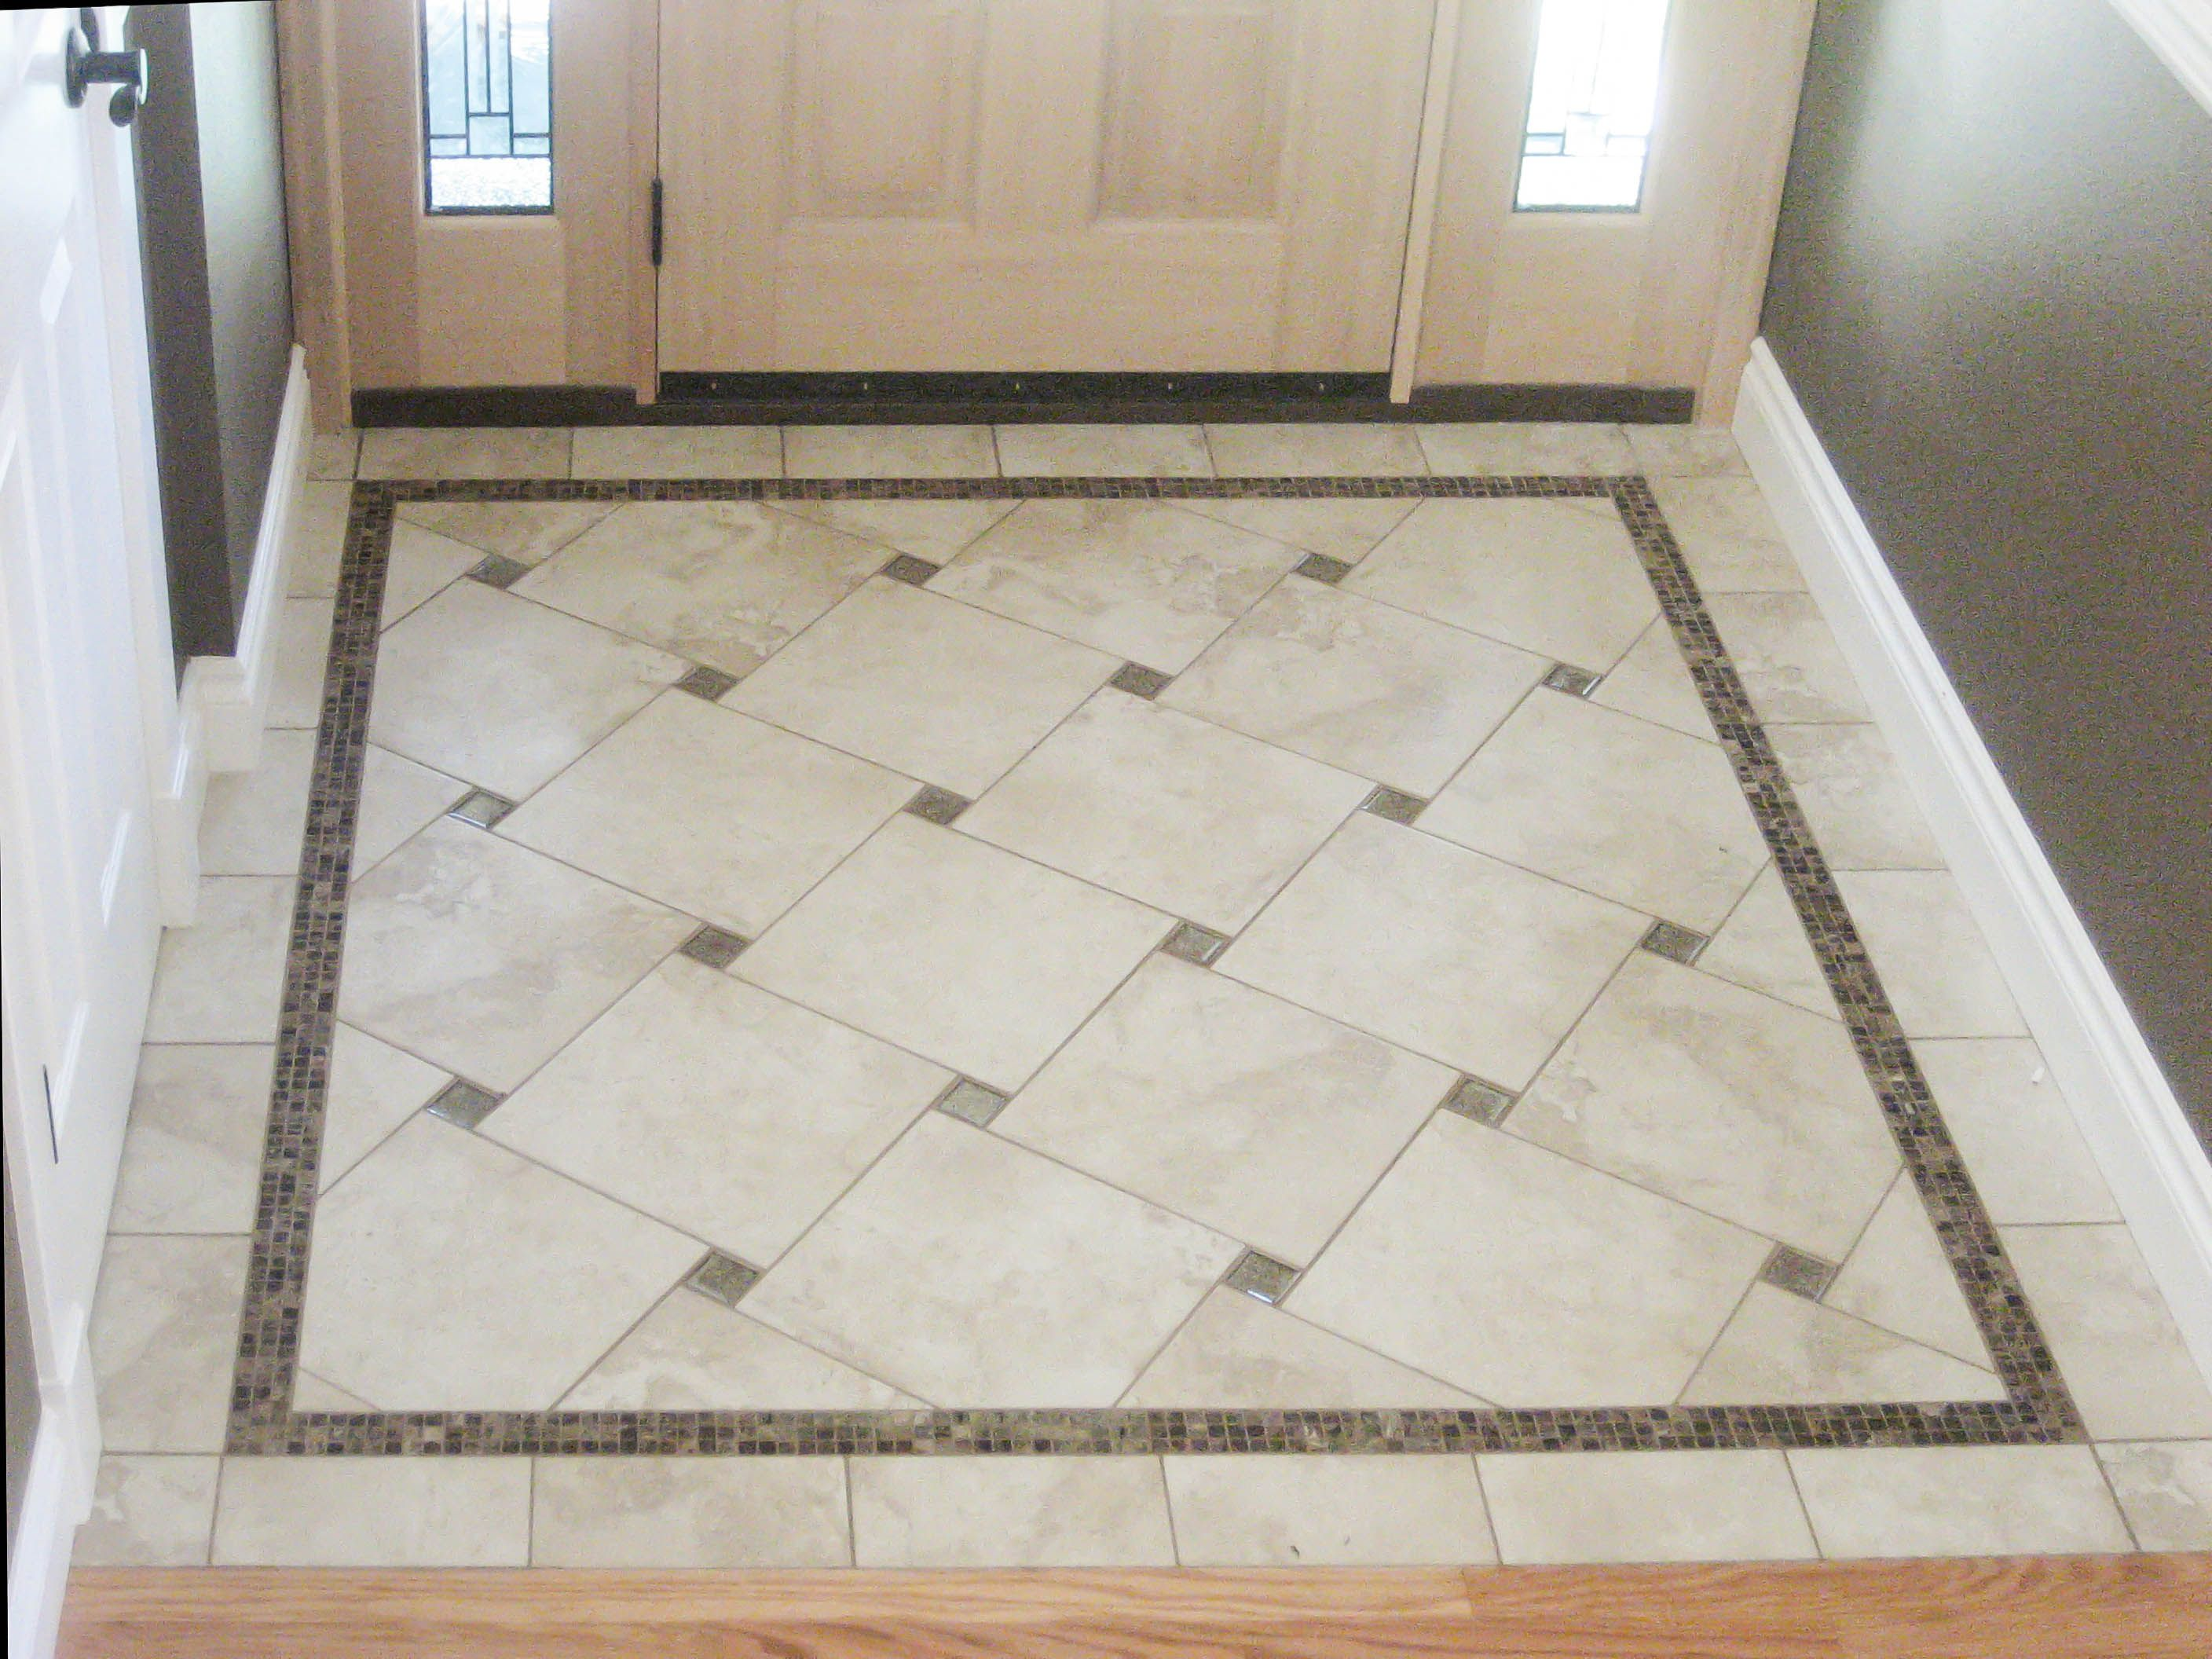 Entry Floor Tile Ideas | Entry Floor Photos Gallery   Seattle Tile  Contractor | IRC Tile